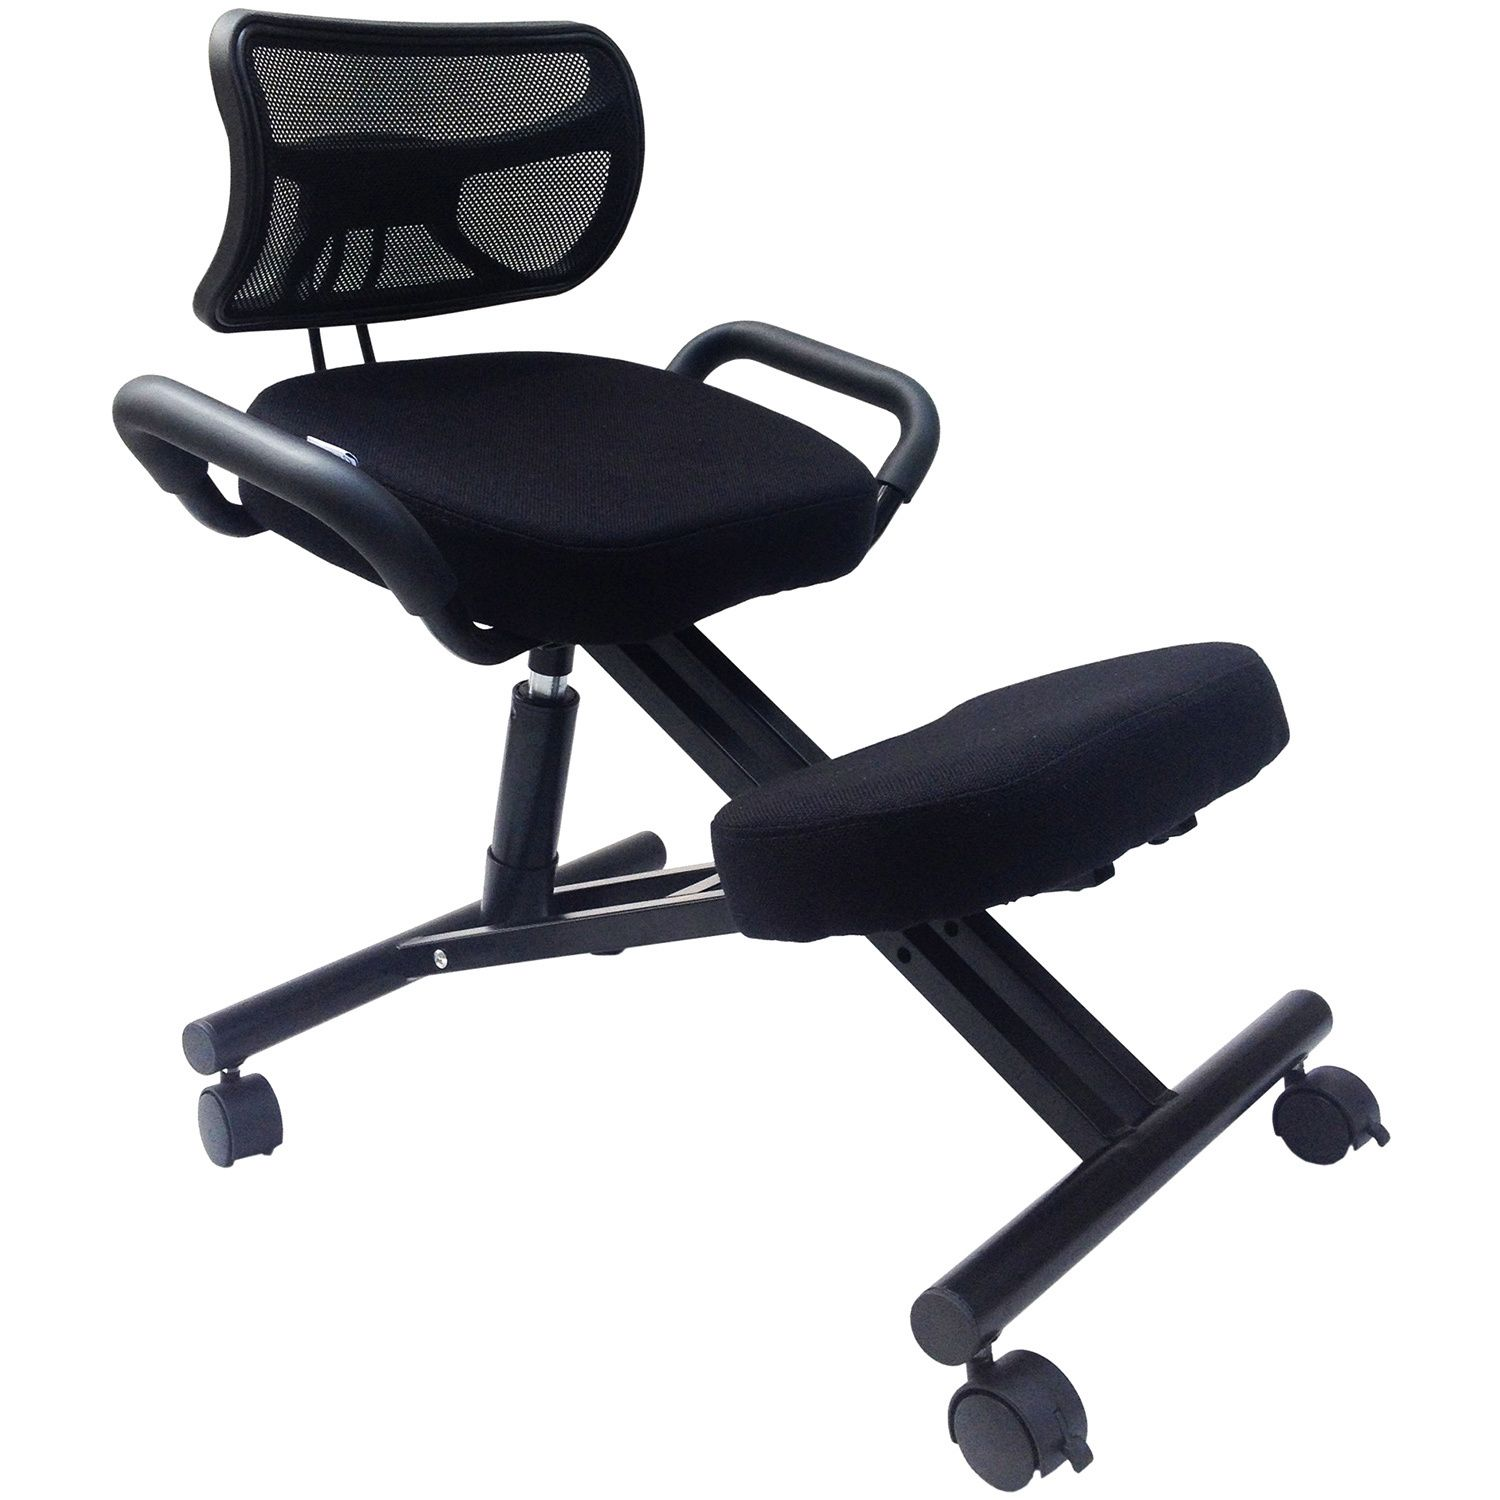 The SC-300B Ergonomic Kneeling Chair Is Built To Support